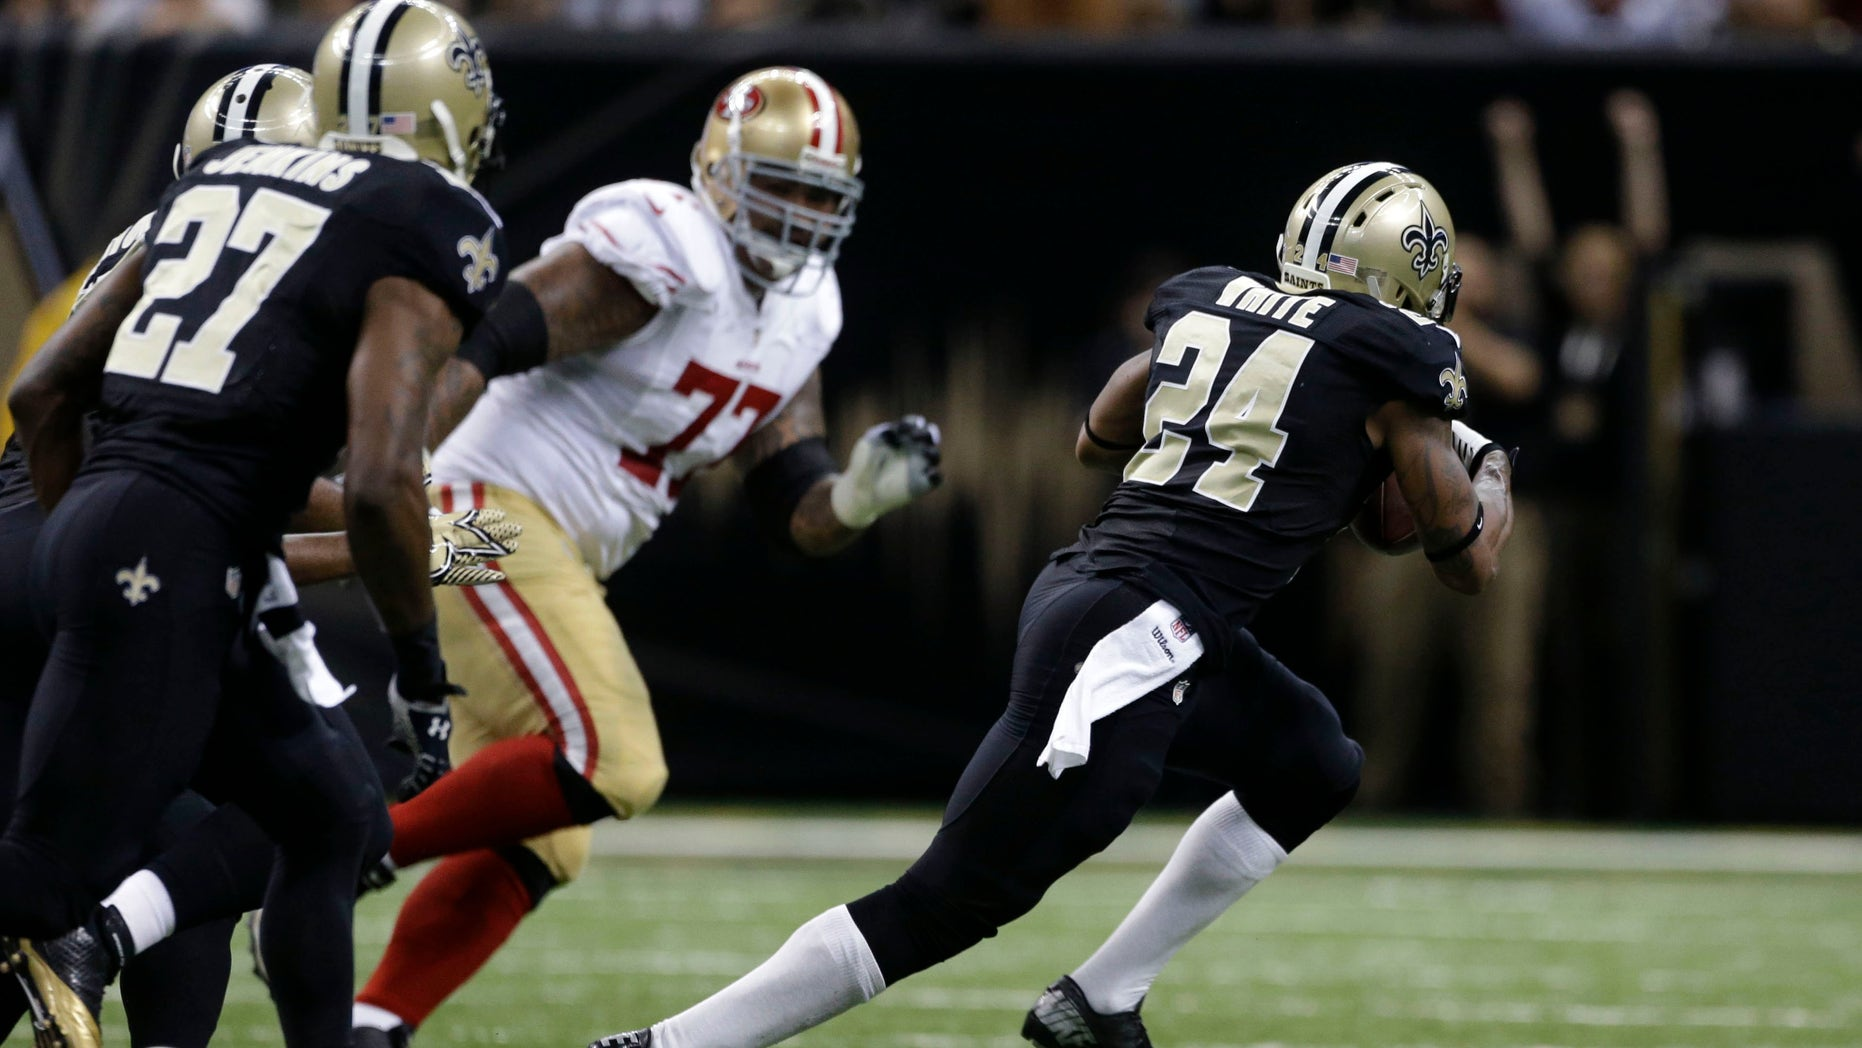 New Orleans Saints cornerback Corey White (24) carries an interception as San Francisco 49ers guard Mike Iupati (77) pursues in the first half of an NFL football game in New Orleans, Sunday, Nov. 17, 2013. (AP Photo/Dave Martin)